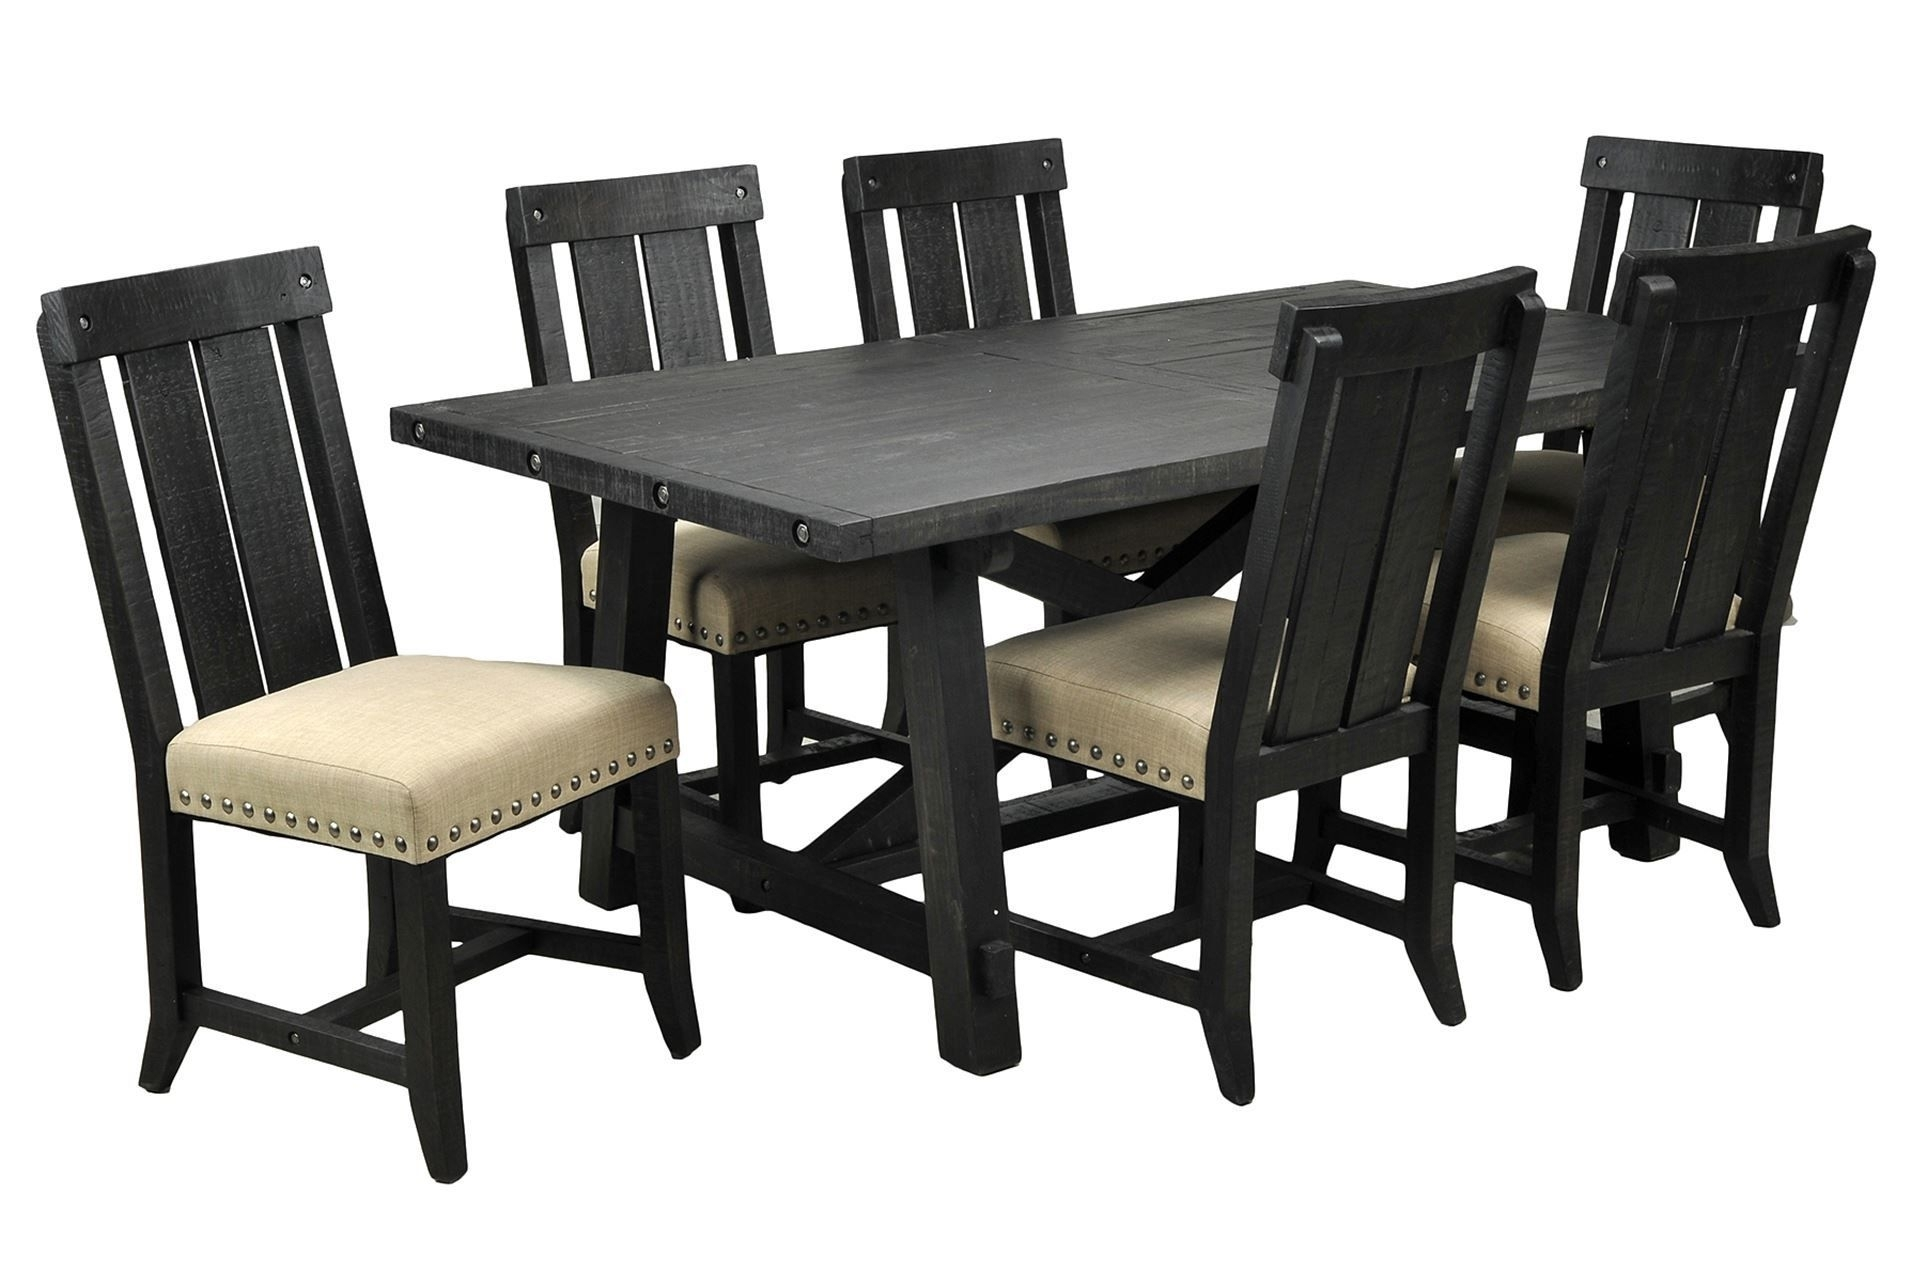 Jaxon 7 Piece Rectangle Dining Set W/wood Chairs | For The House I Within Latest Jaxon Grey 5 Piece Round Extension Dining Sets With Upholstered Chairs (View 4 of 20)